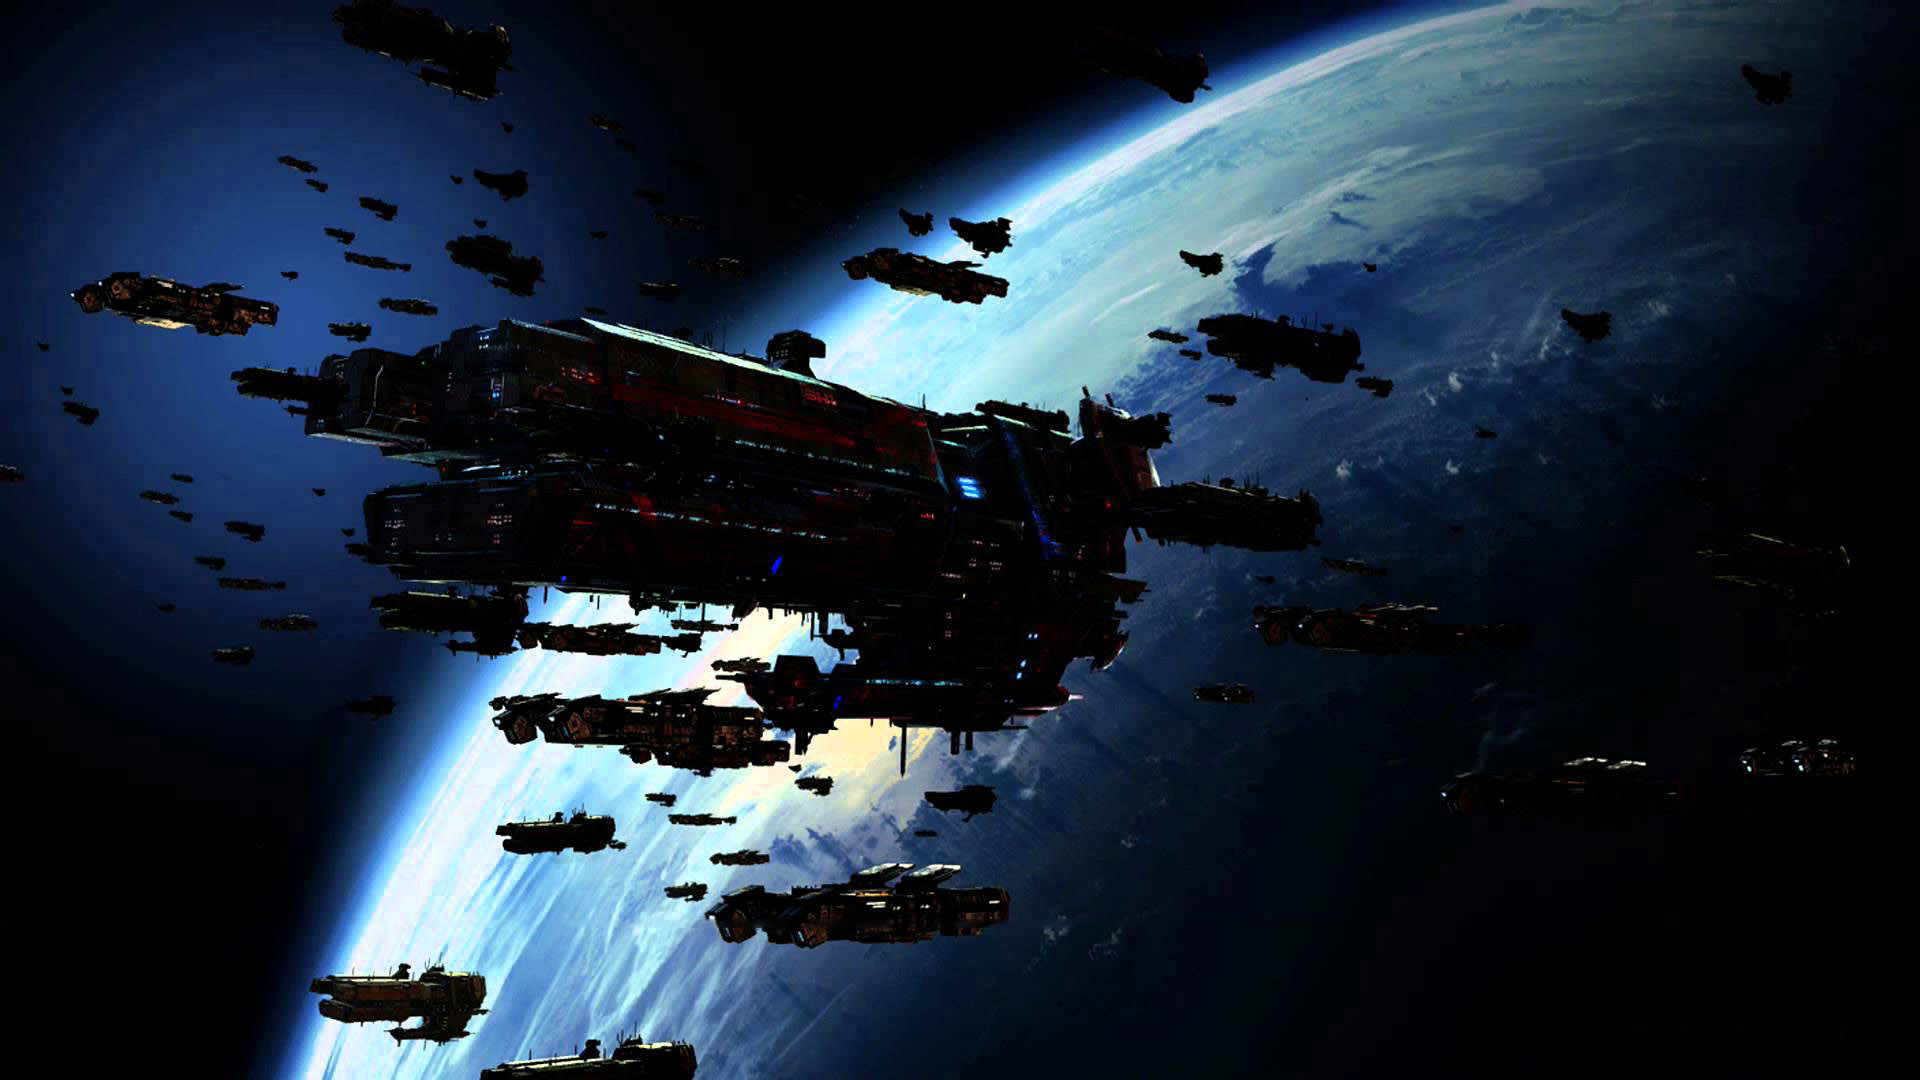 Starship fleet. We face a challenge to our future.